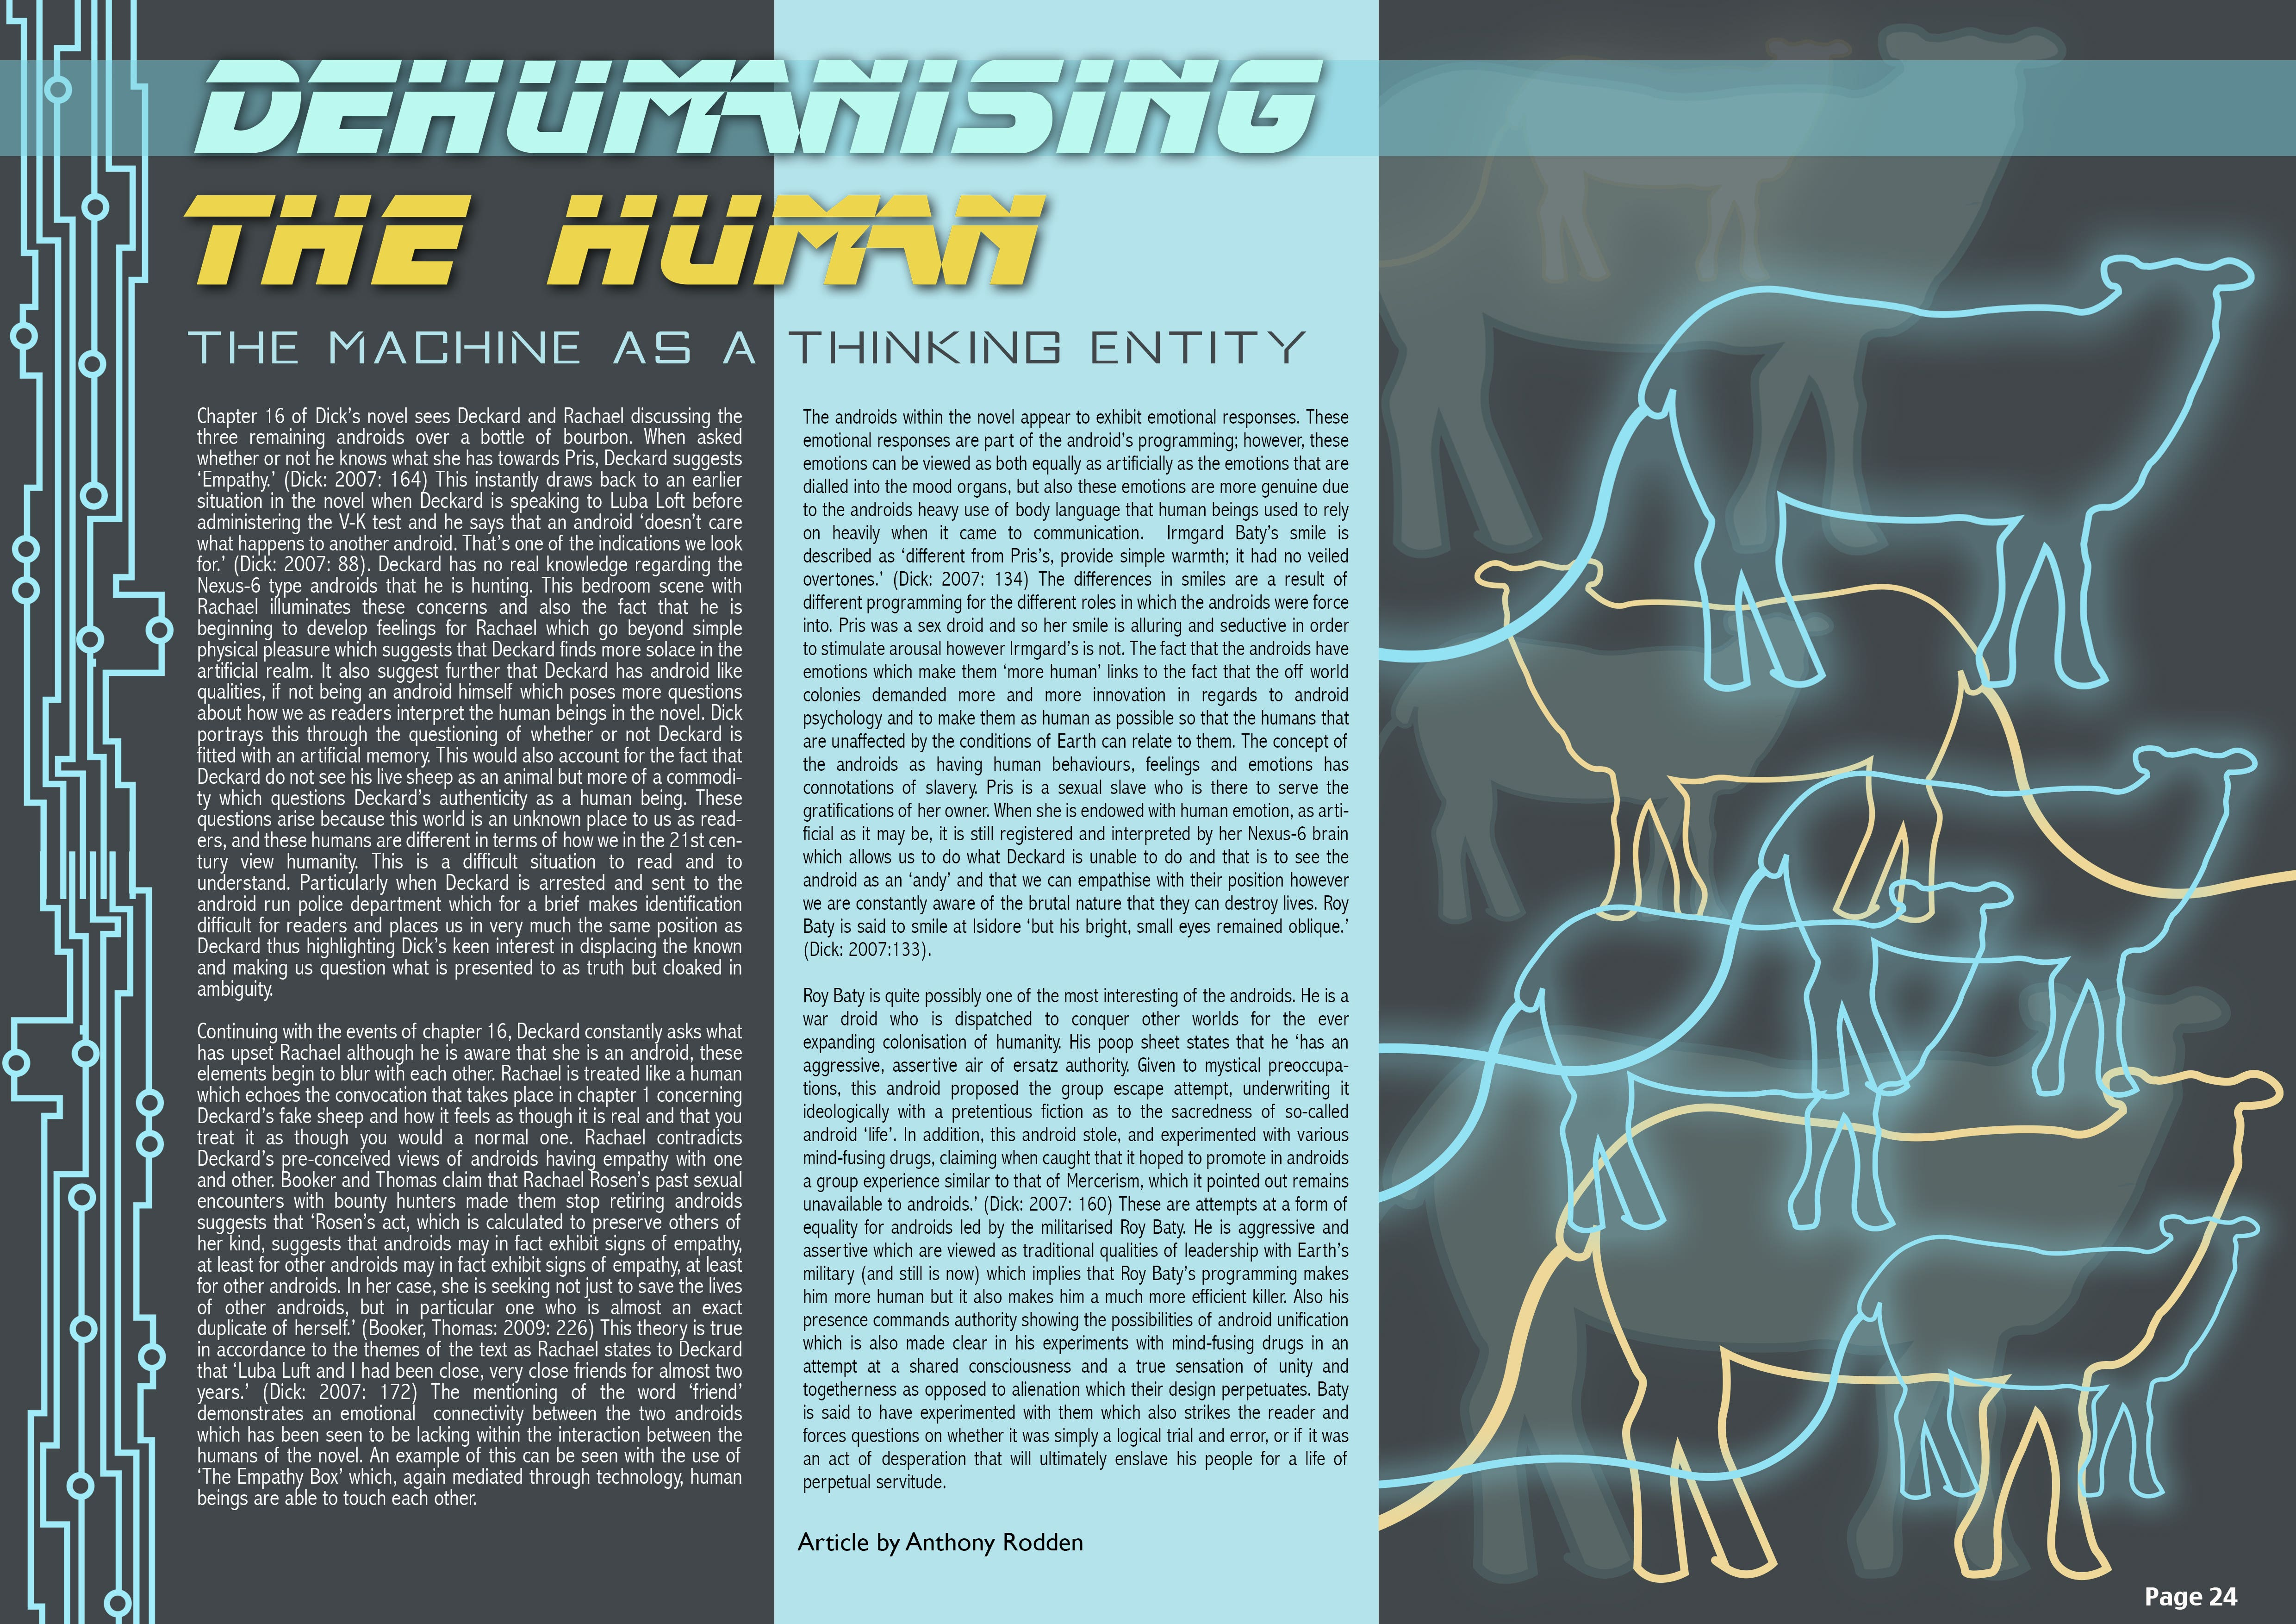 Dehumanising The Human: The Machine as A Thinking Entity